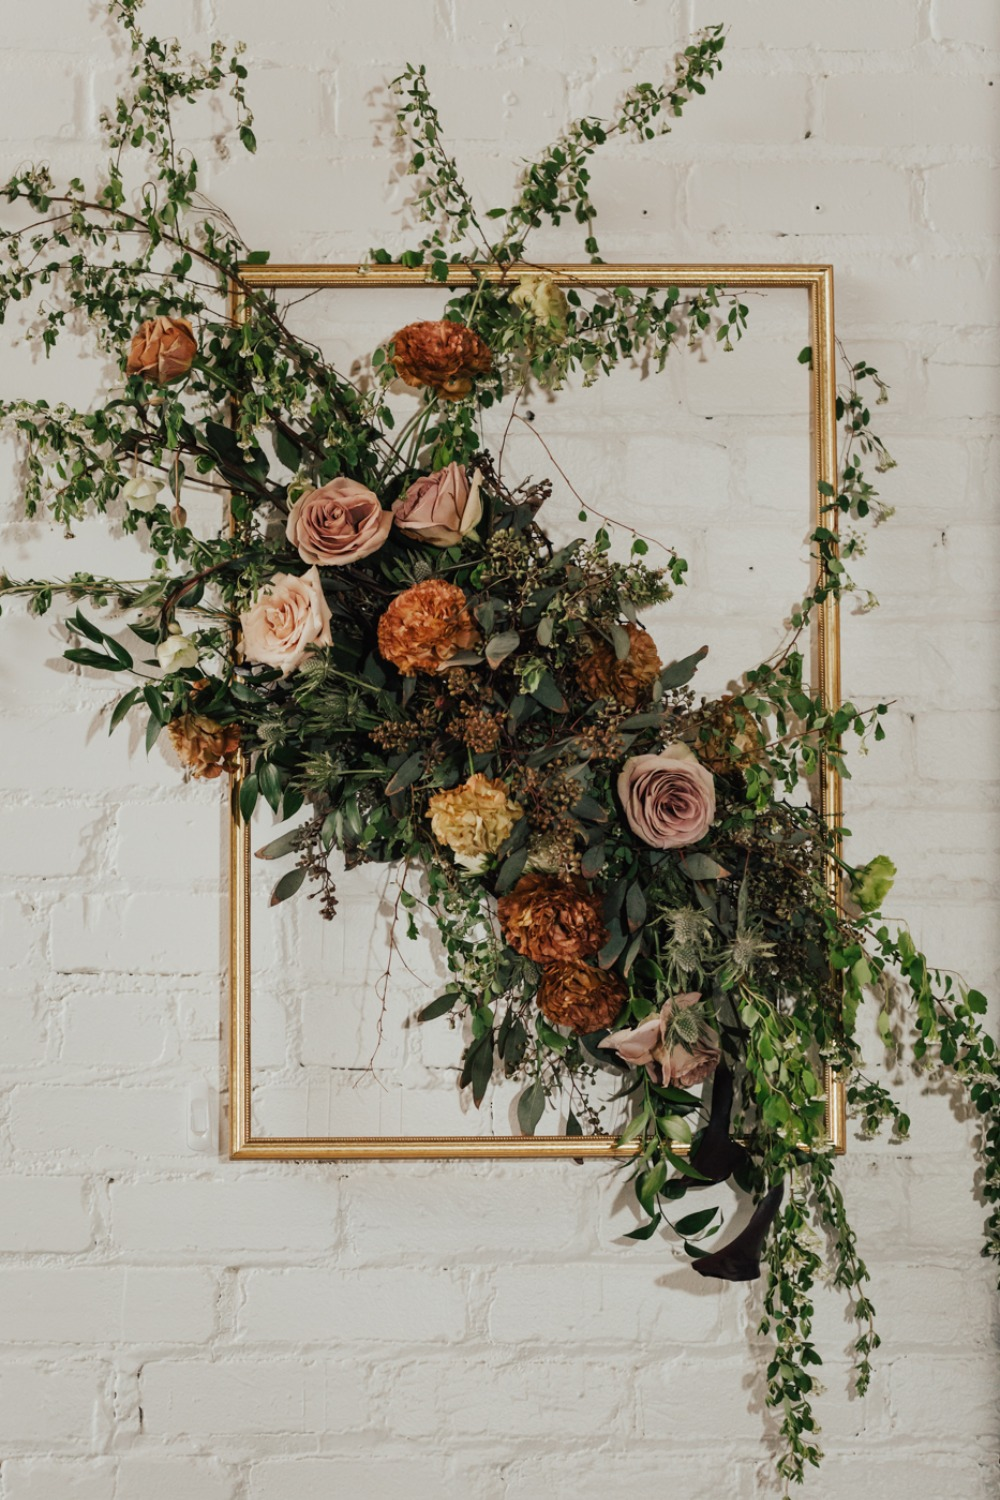 framed floral decor